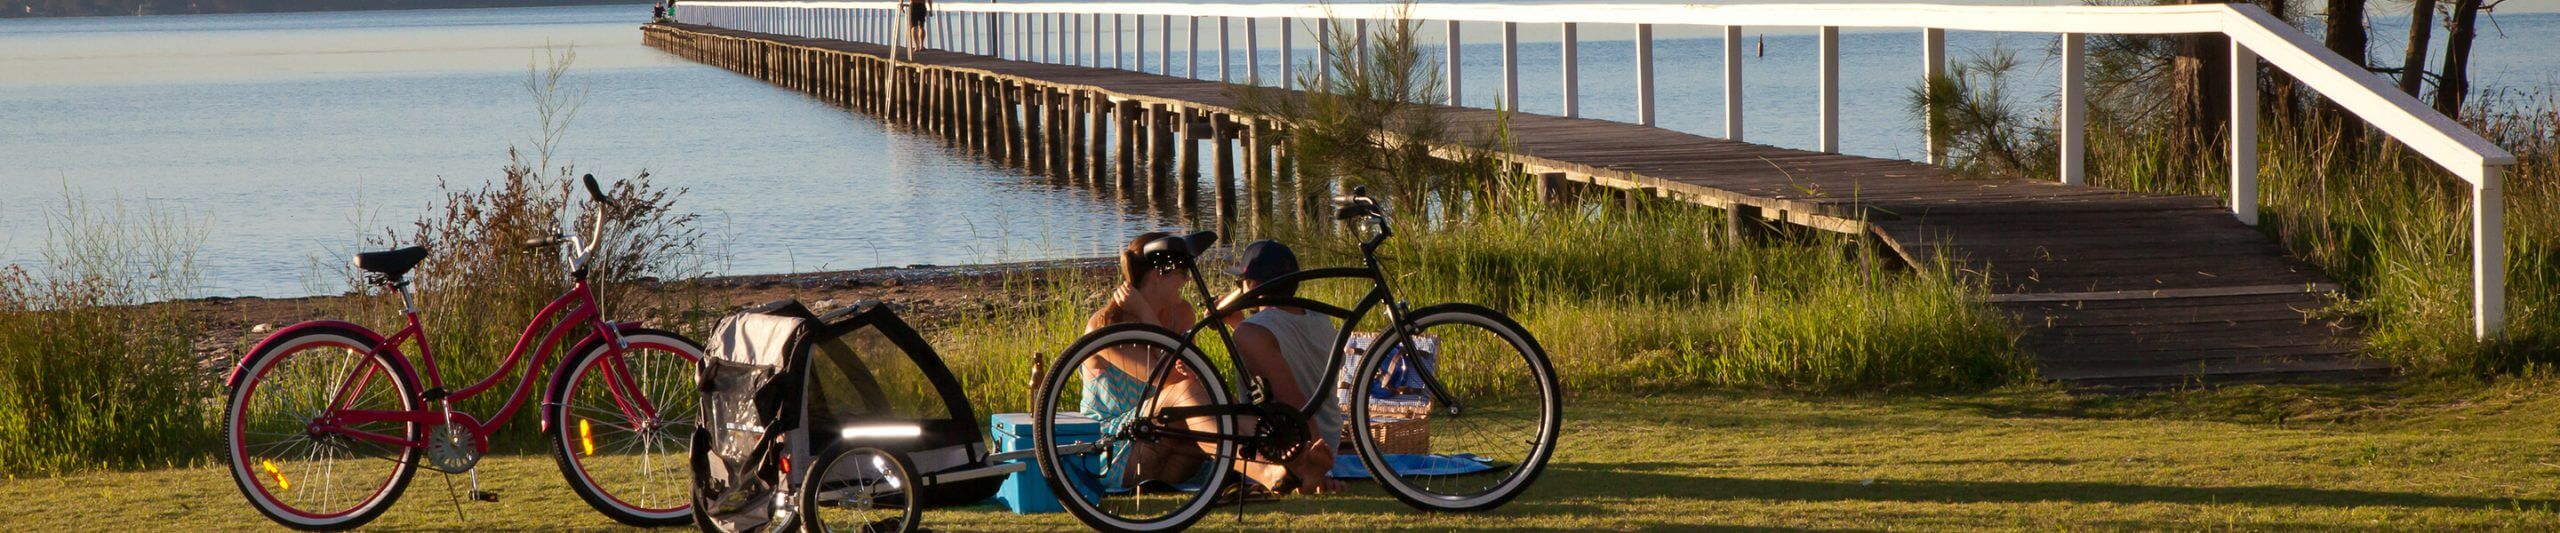 people sat near wooden pier and bikes